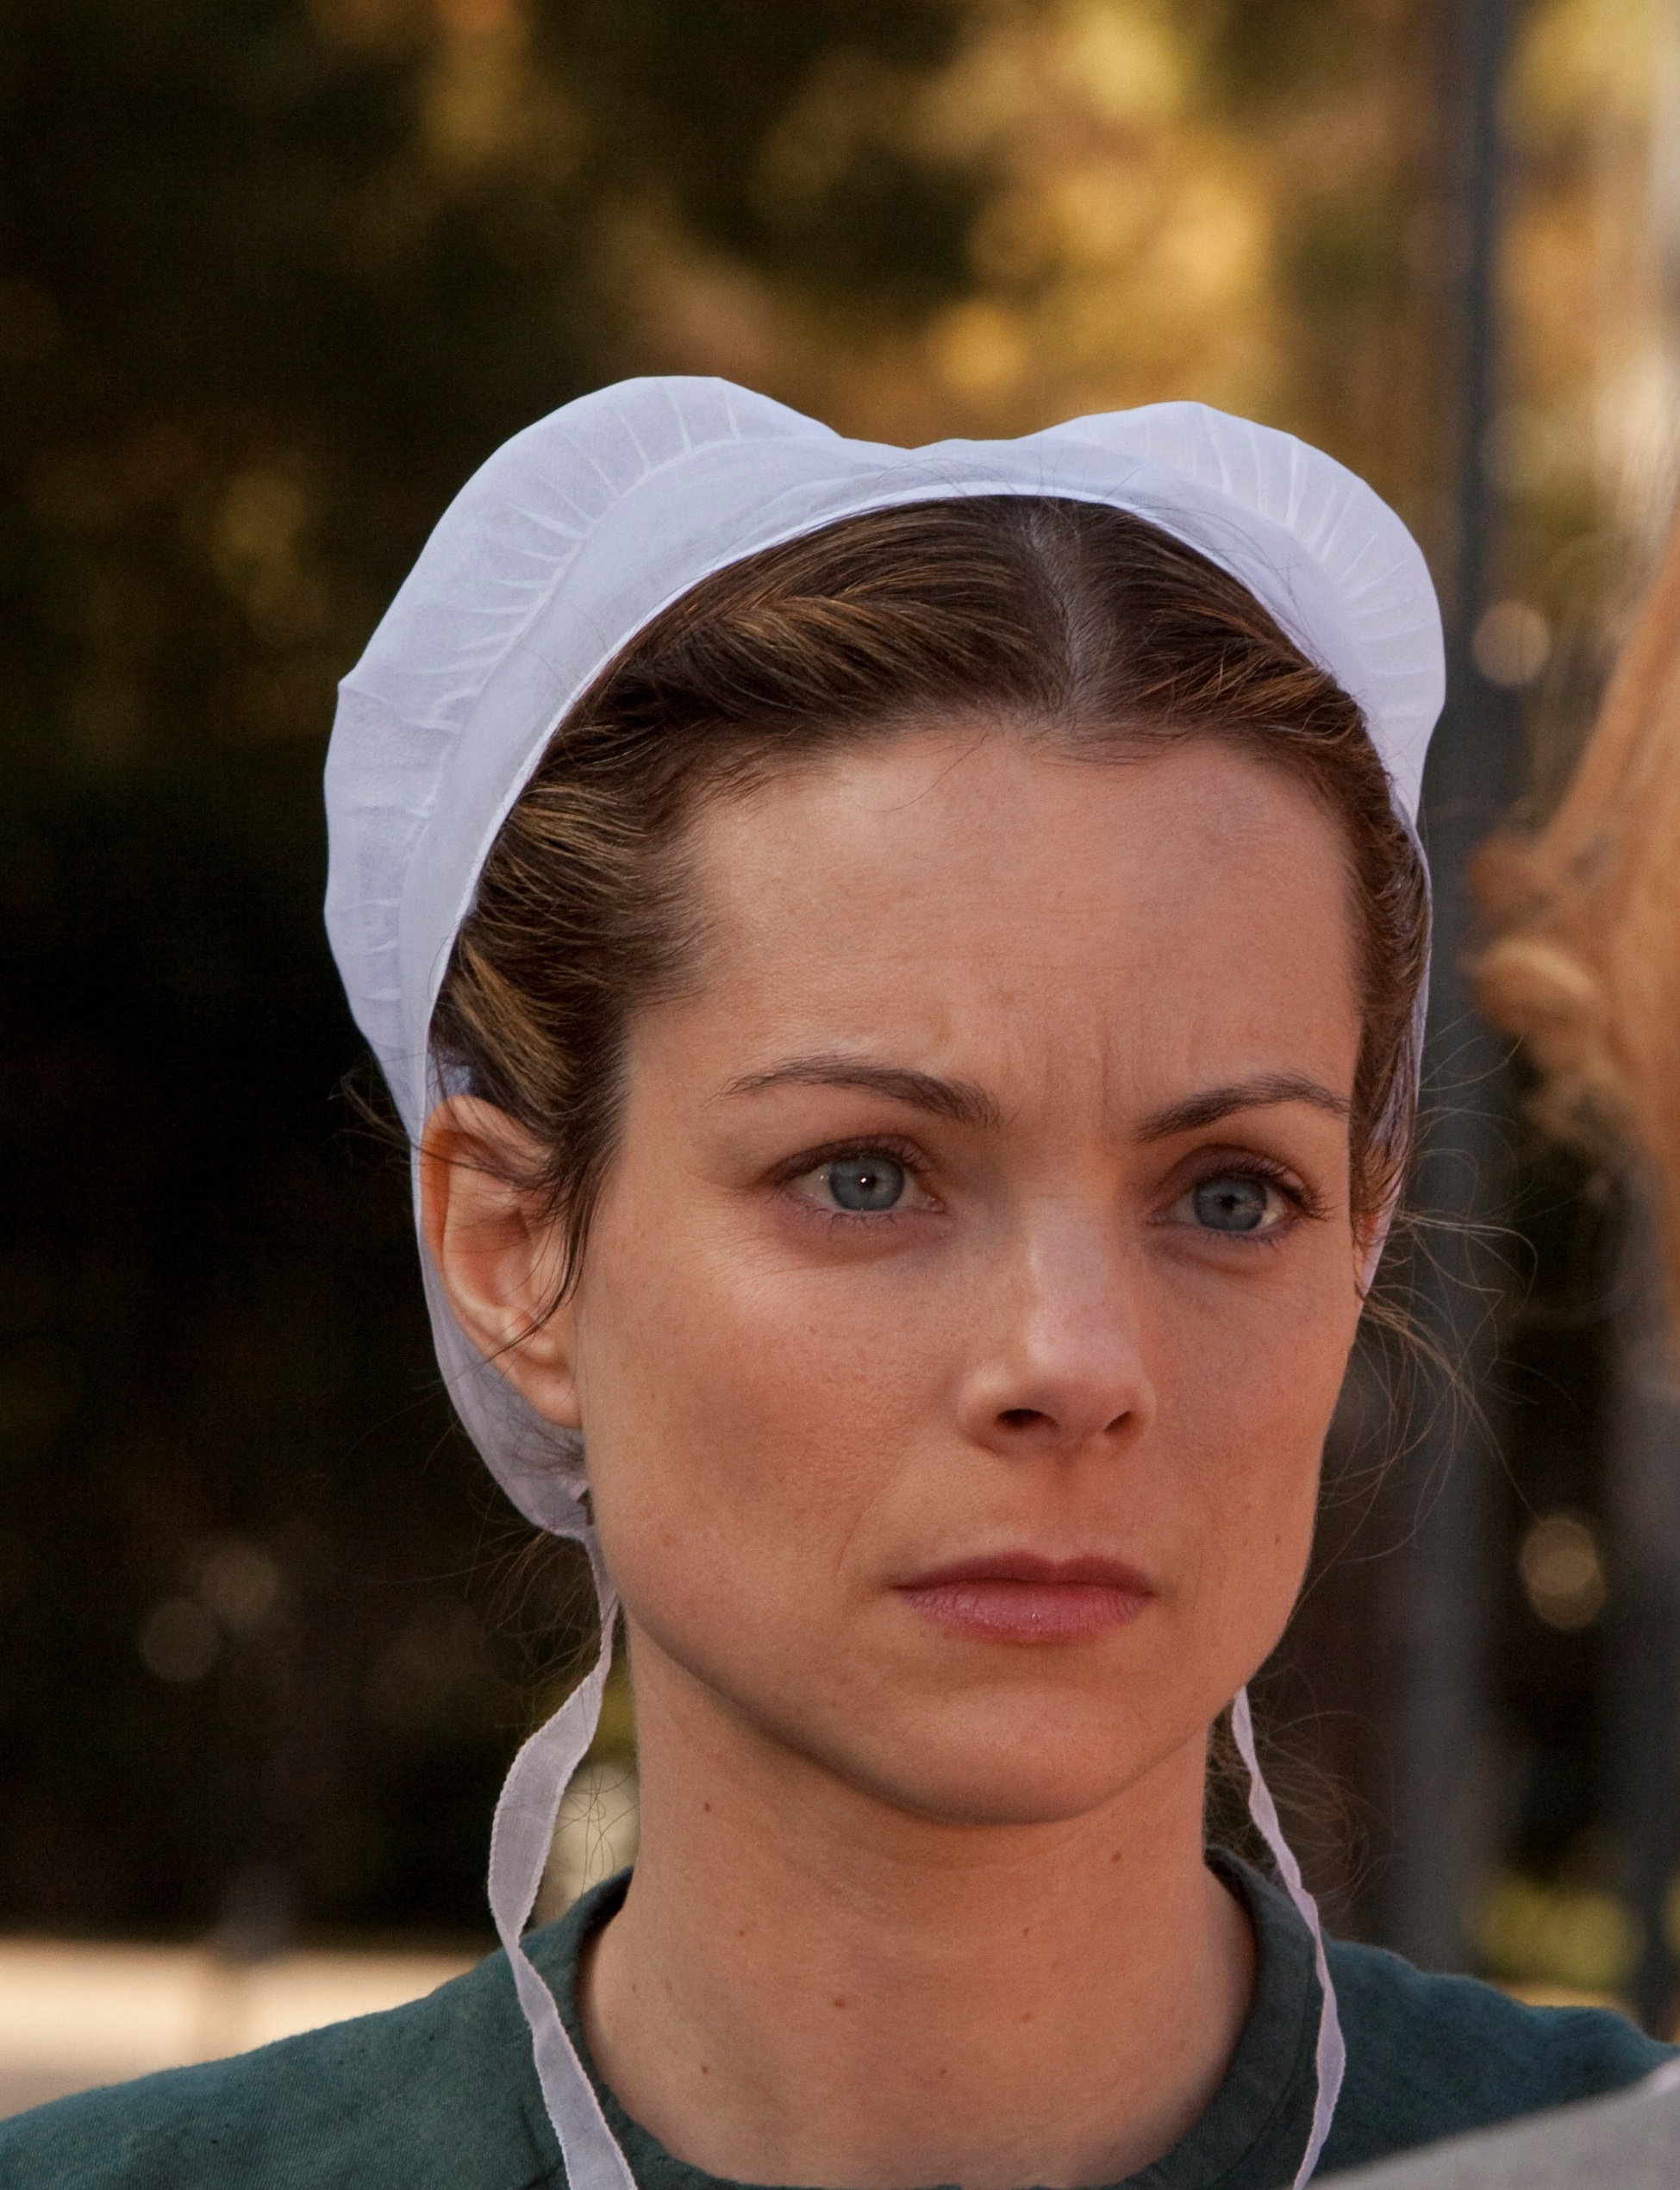 Amish Grace on LMN March 28